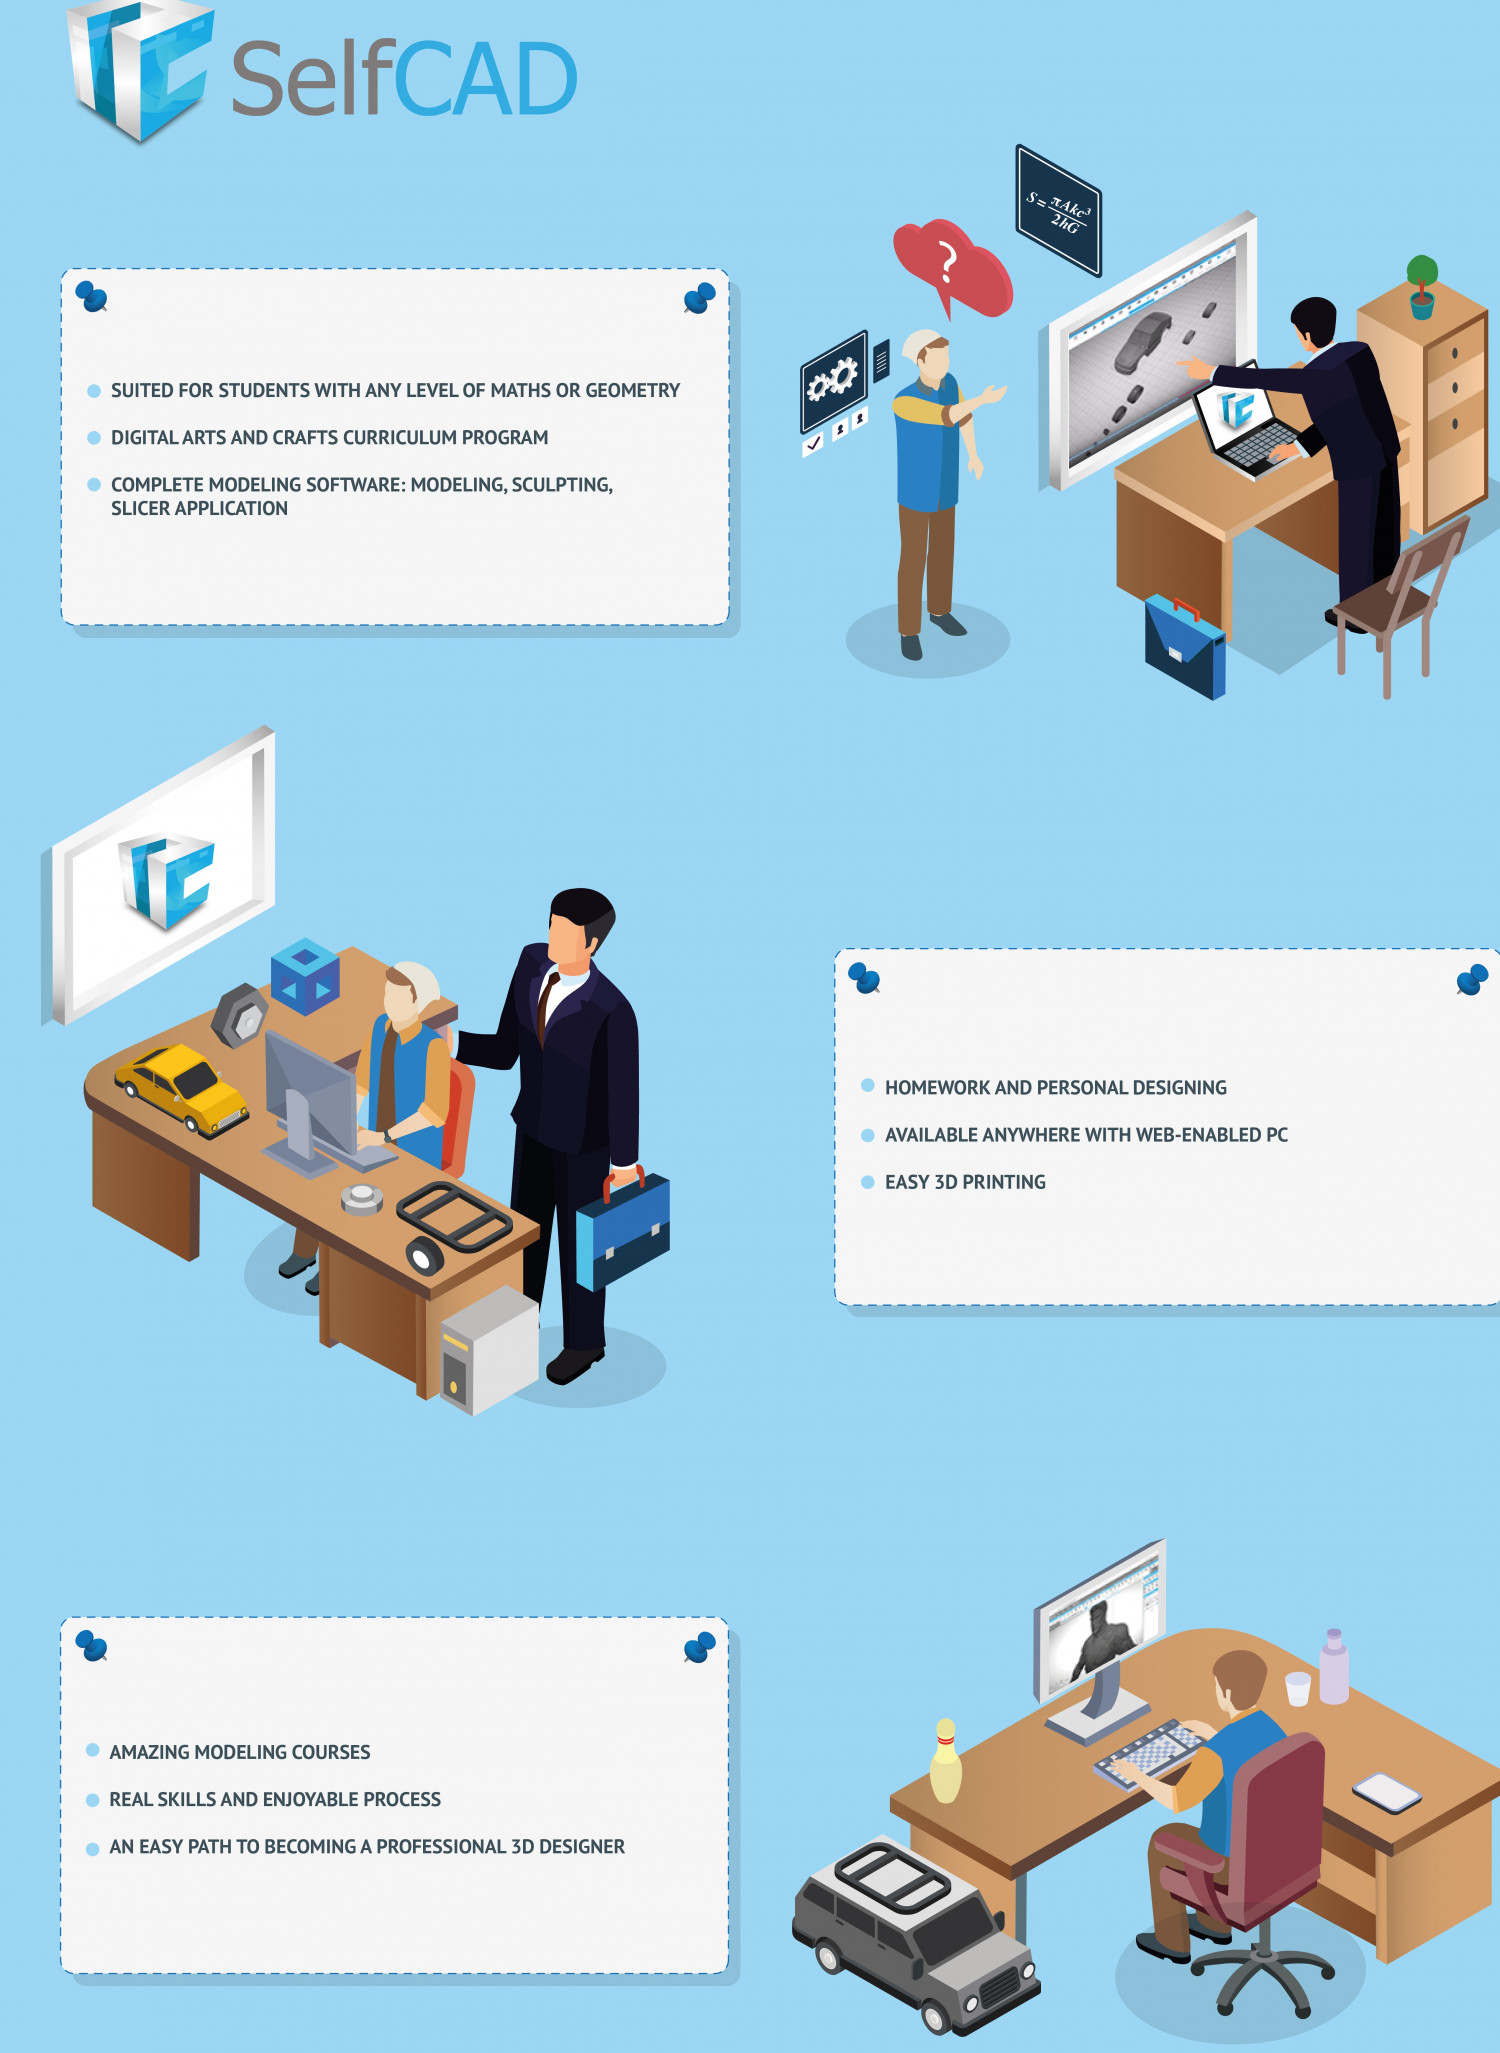 SelfCAD-3D modeling and printing software Infographic